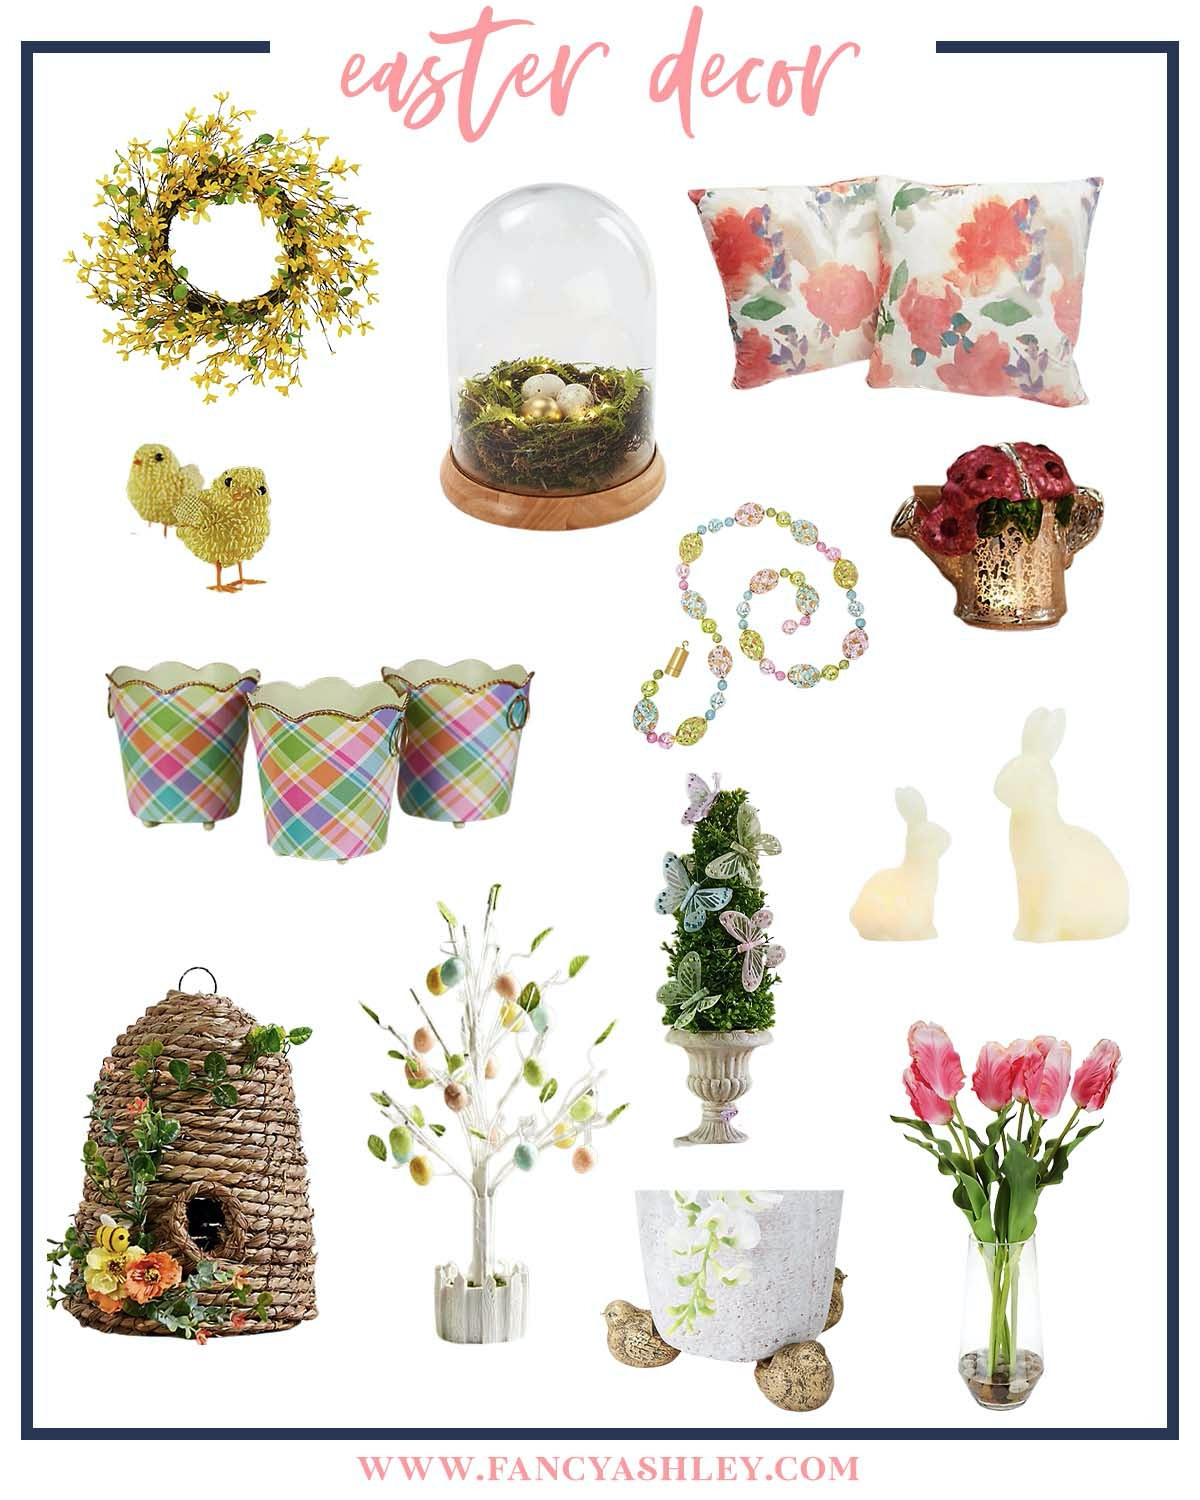 Easter Decor by popular Houston life and style blog, Fancy Ashley: collage image of a yellow flower wreath, baby chick decor, floral throw pillows, bird nest kloche, plaid ceramic buckets, egg tree decor, faux tulips, bird planter, gold watering can decor, Easter bunny decor and sea grass beehive decor.